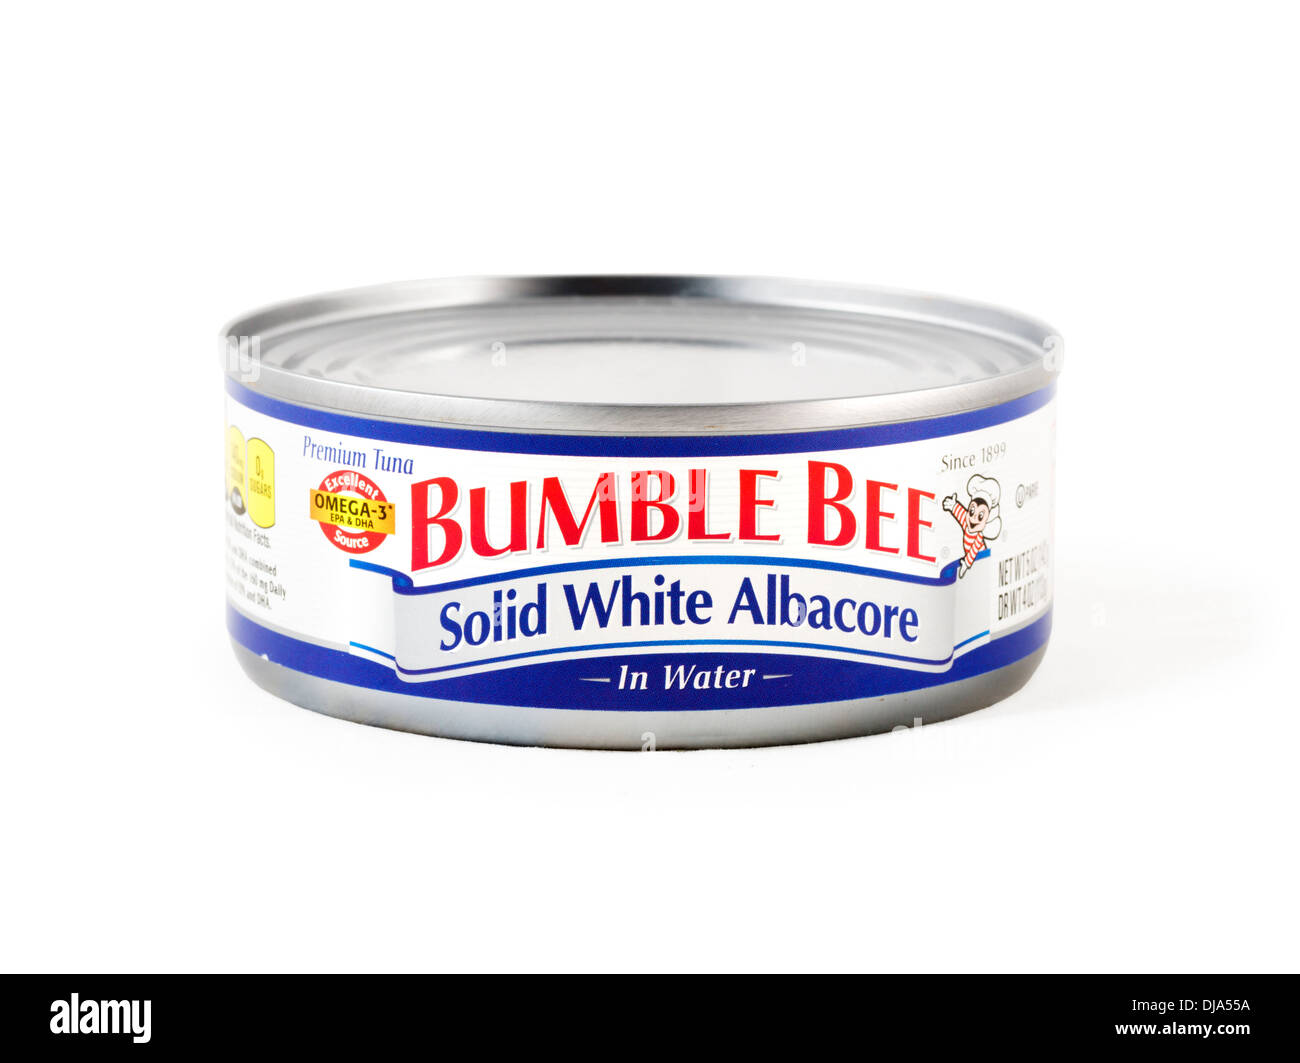 Tin of Bumble Bee Solid White Albacore Tuna, USA - Stock Image